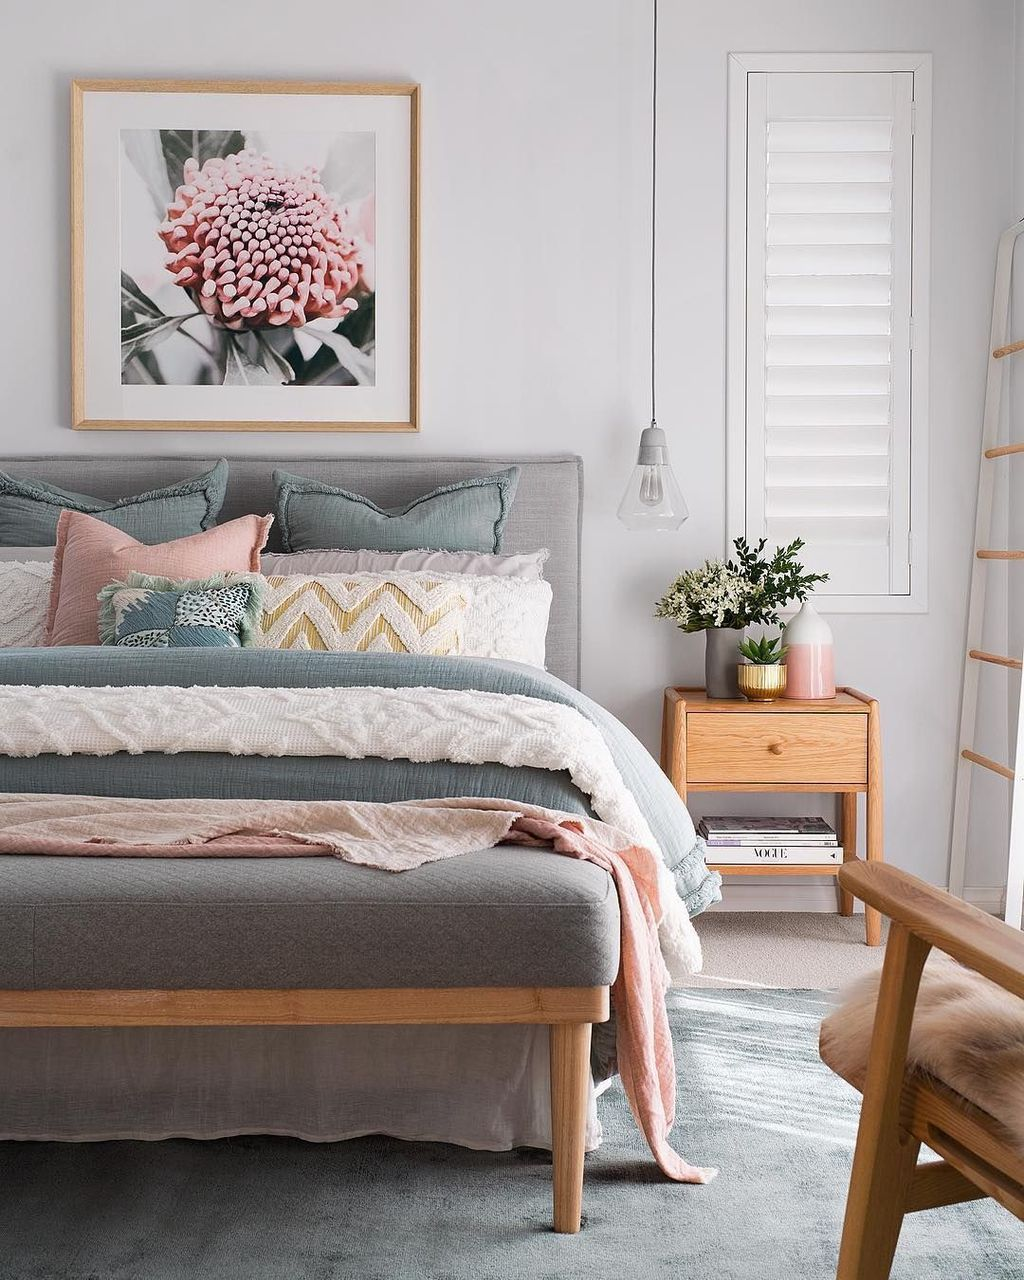 46 The Best Spring Bedroom Decor Ideas You Must Apply Now